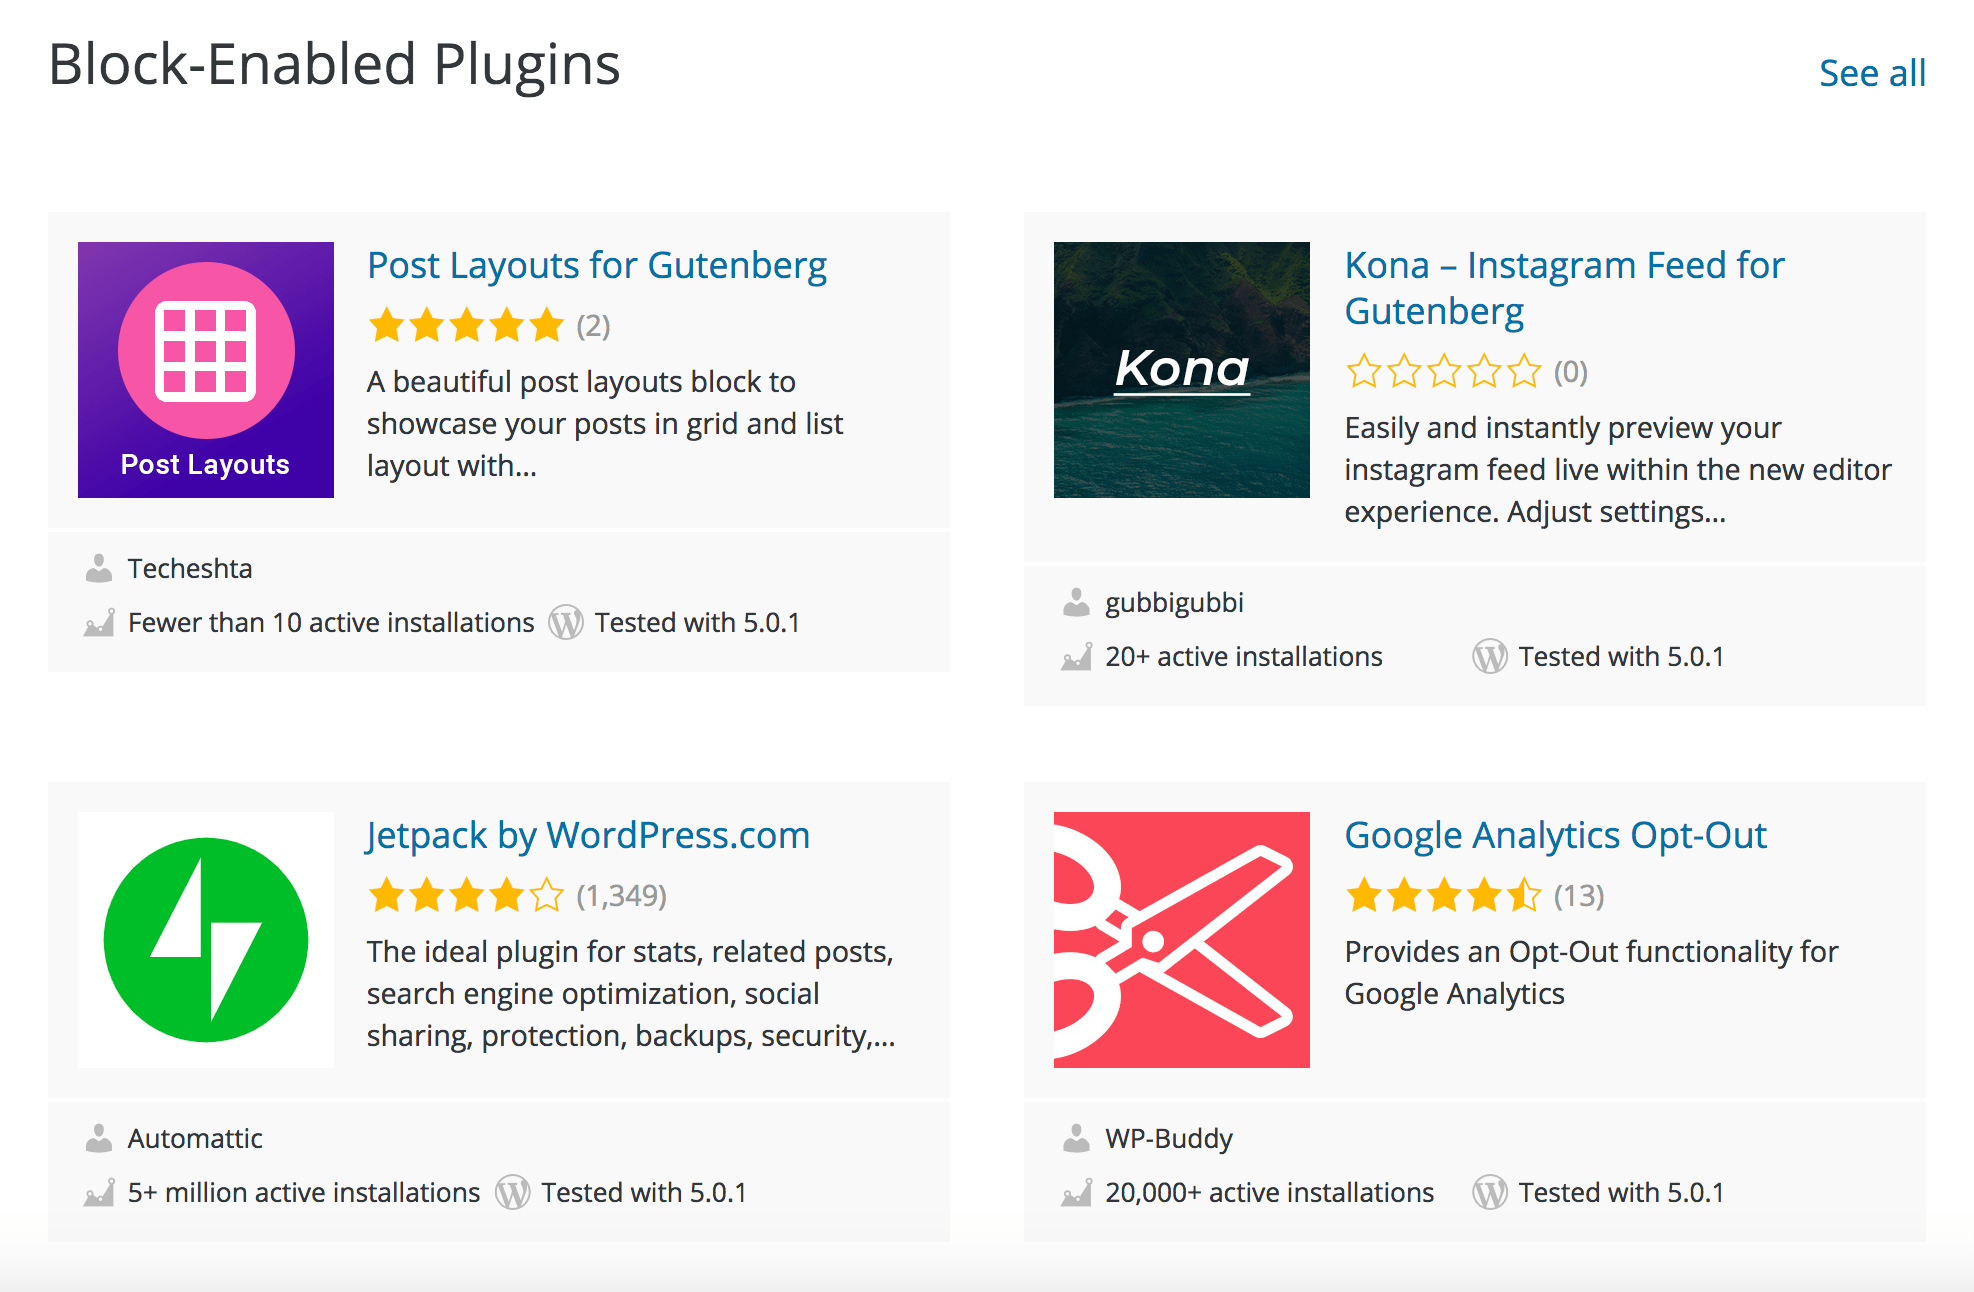 WordPress Plugin Directory Now Features a Curated Section for Block